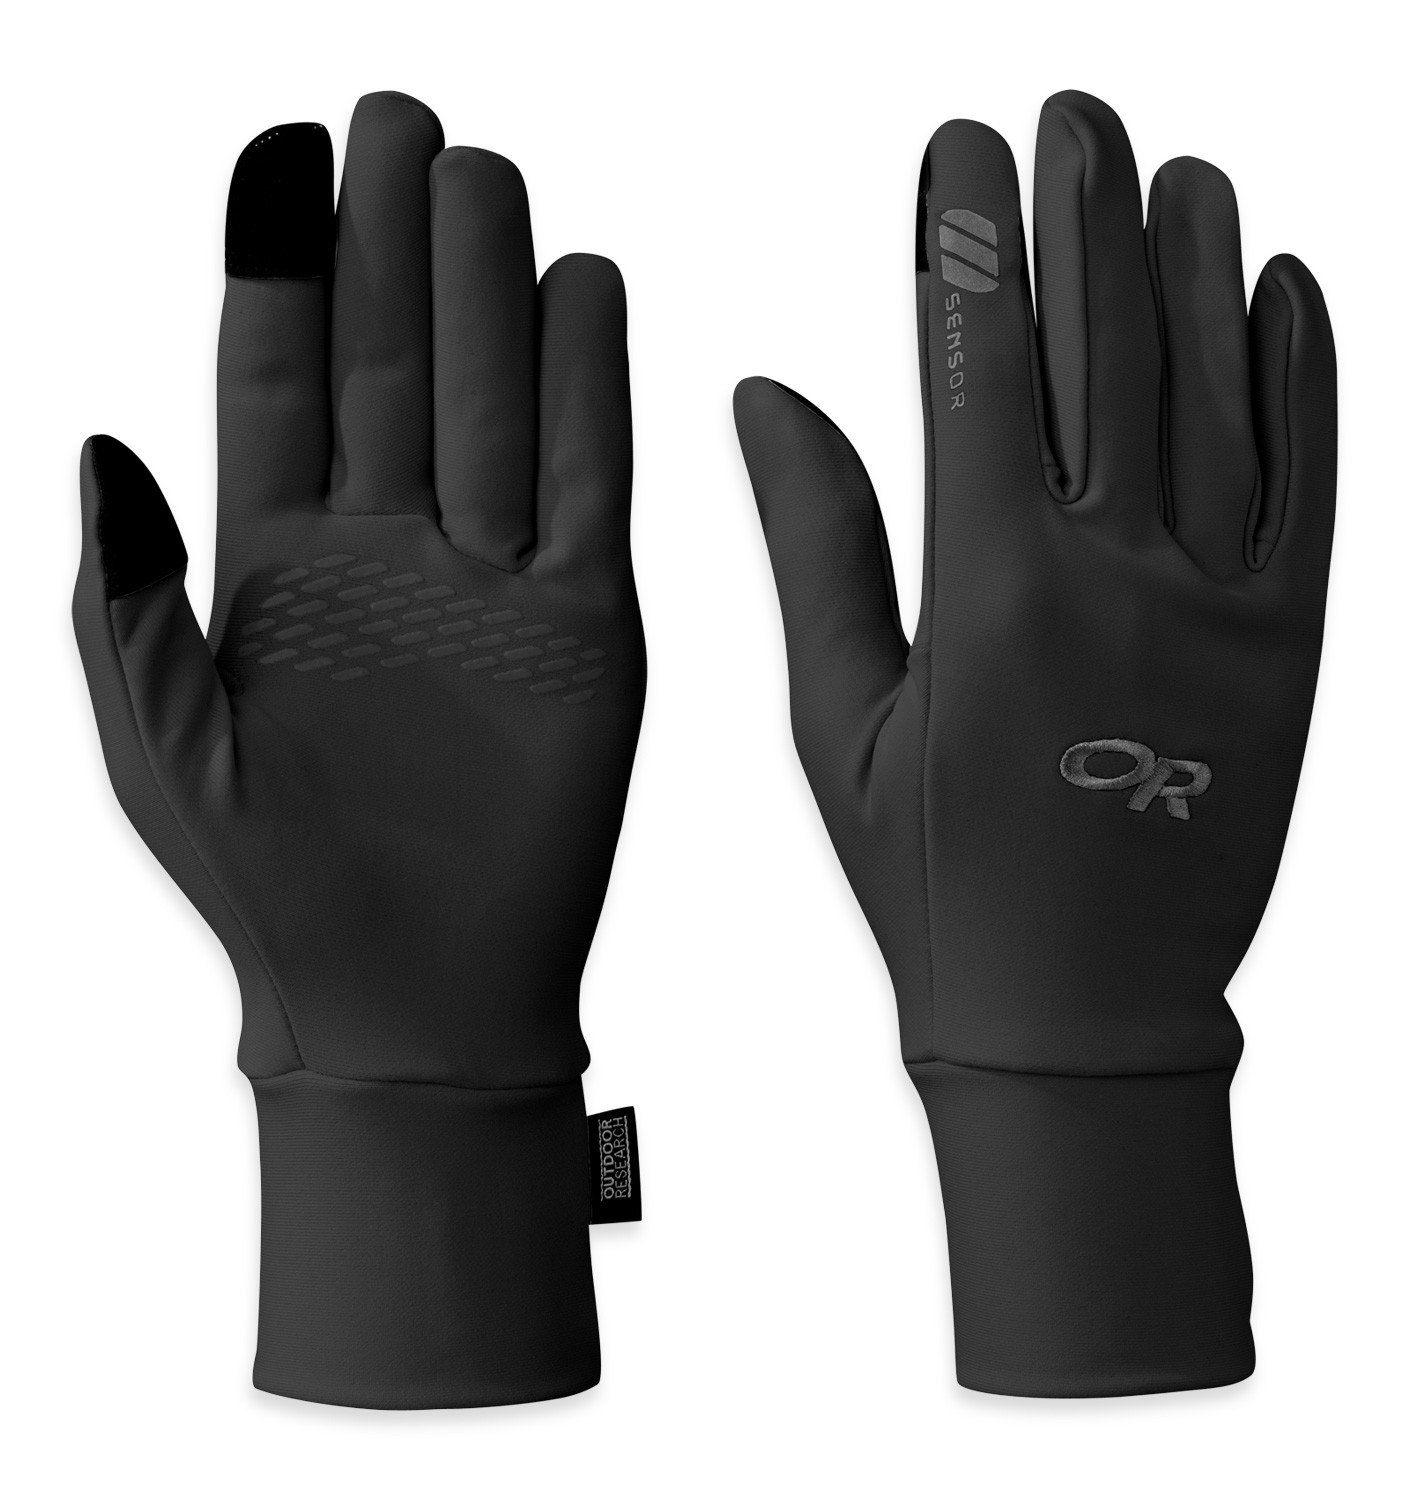 Outdoor Research Women's PL Base Sensor Gloves, Black, Small by Outdoor Research